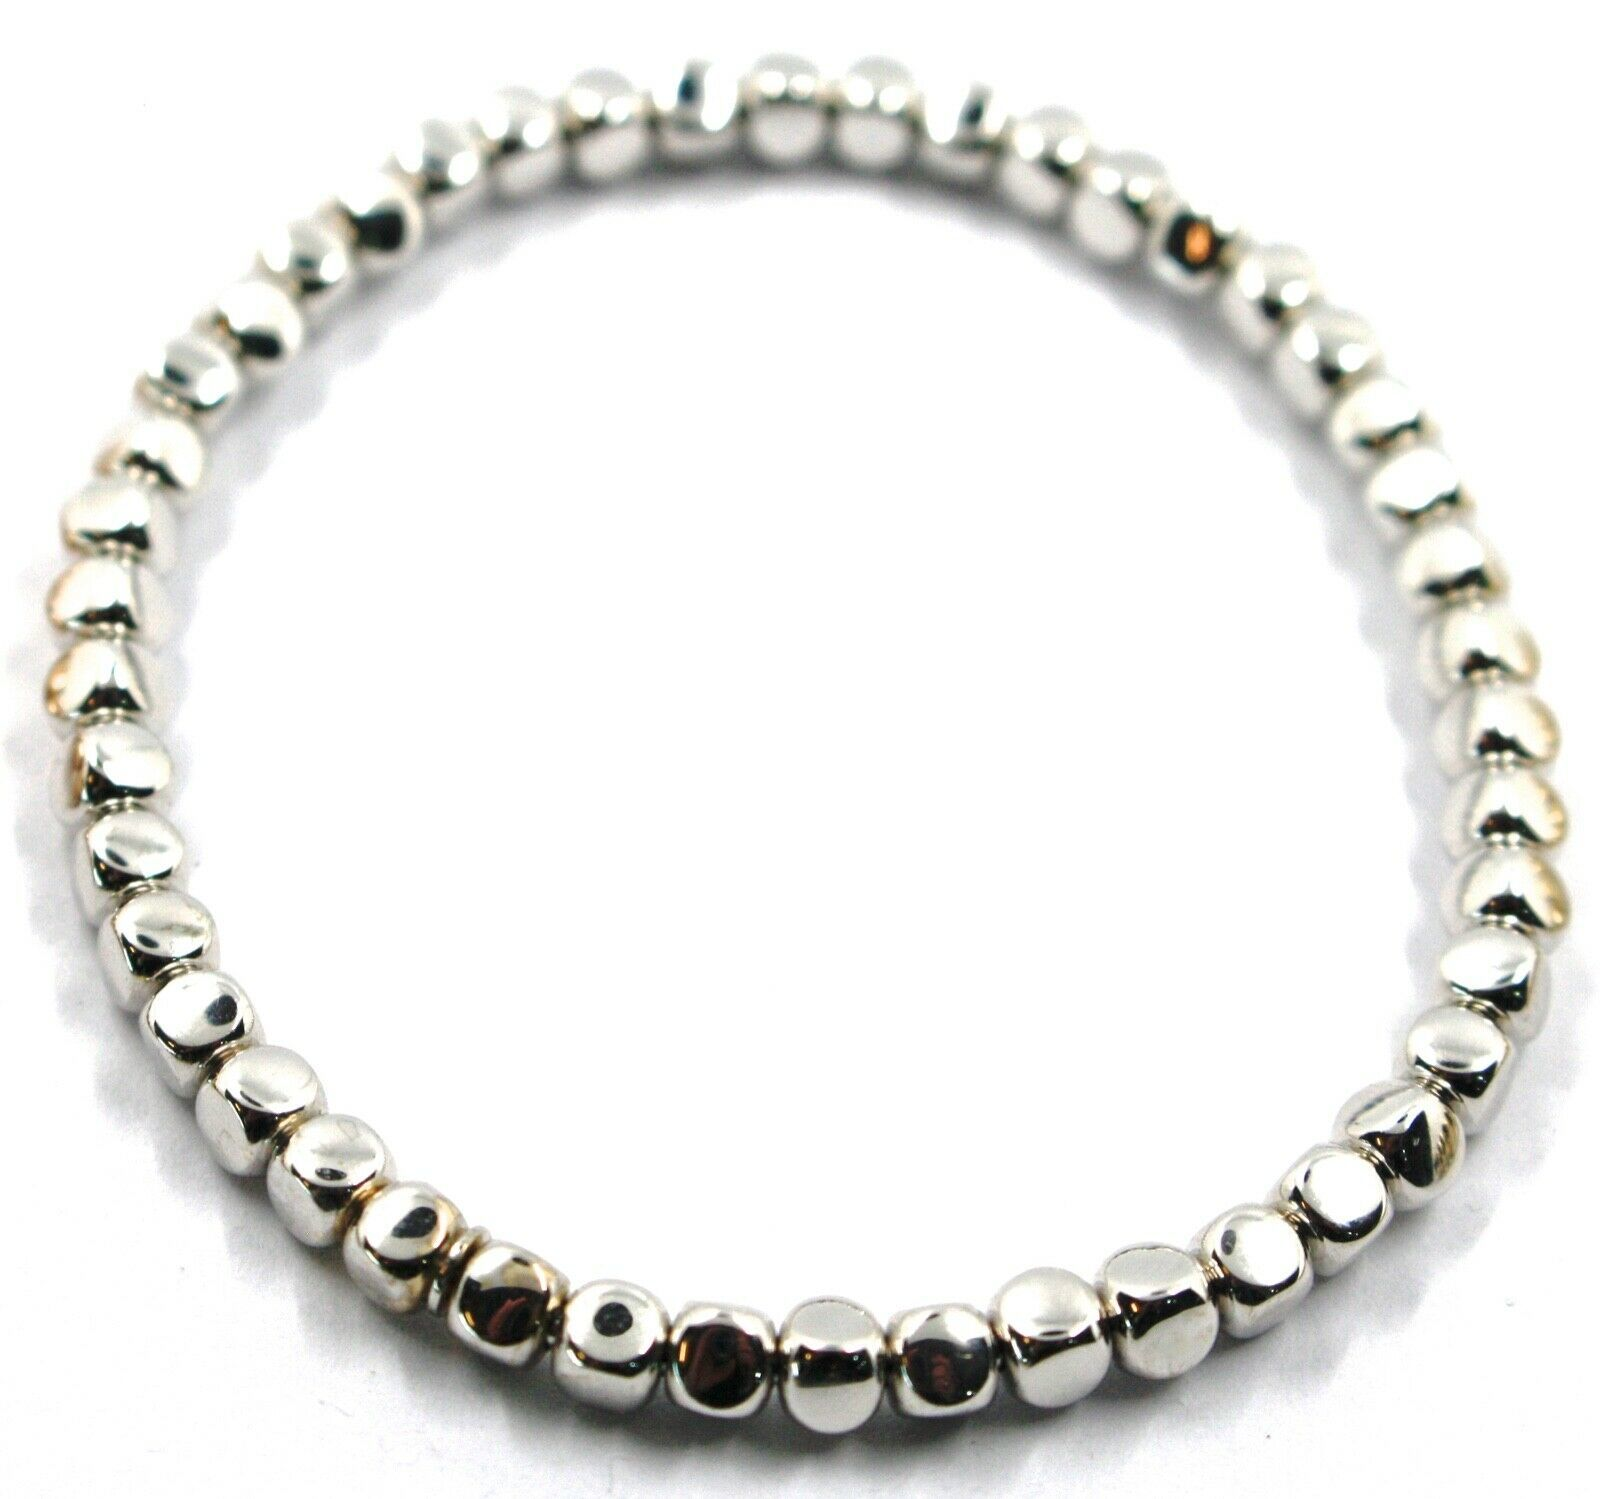 "SOLID 18K WHITE GOLD ELASTIC BRACELET, CUBES DIAMETER 4 MM 0.16"", MADE IN ITALY"